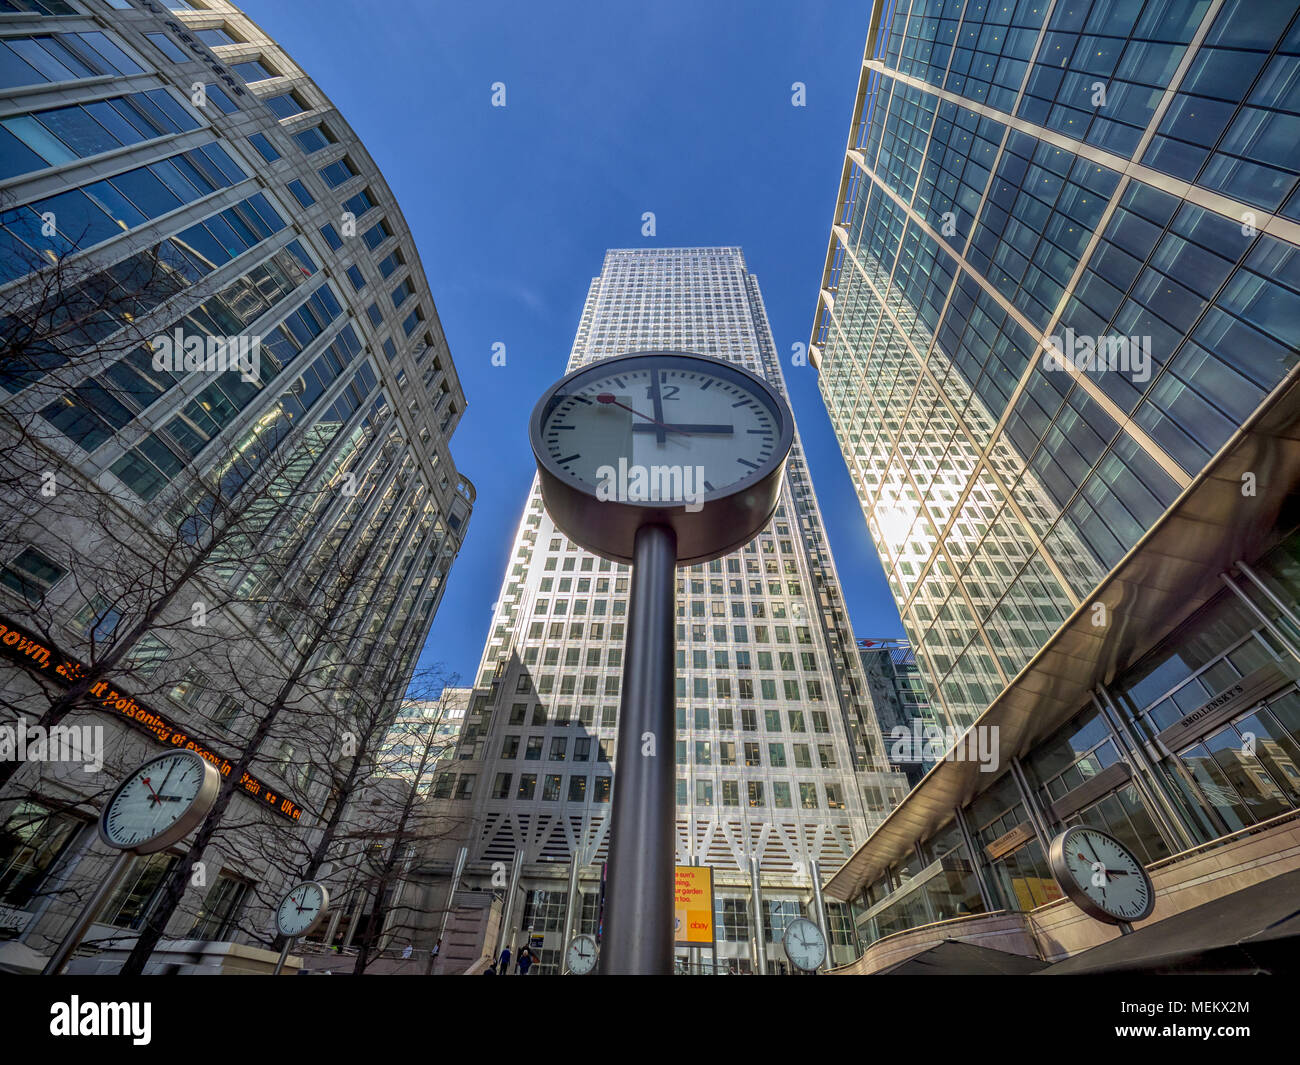 CANARY WHARF, DOCKLANDS, LONDON:  The Six Public Clocks (by Konstantin Grcic)  in Canary Wharf - Stock Image